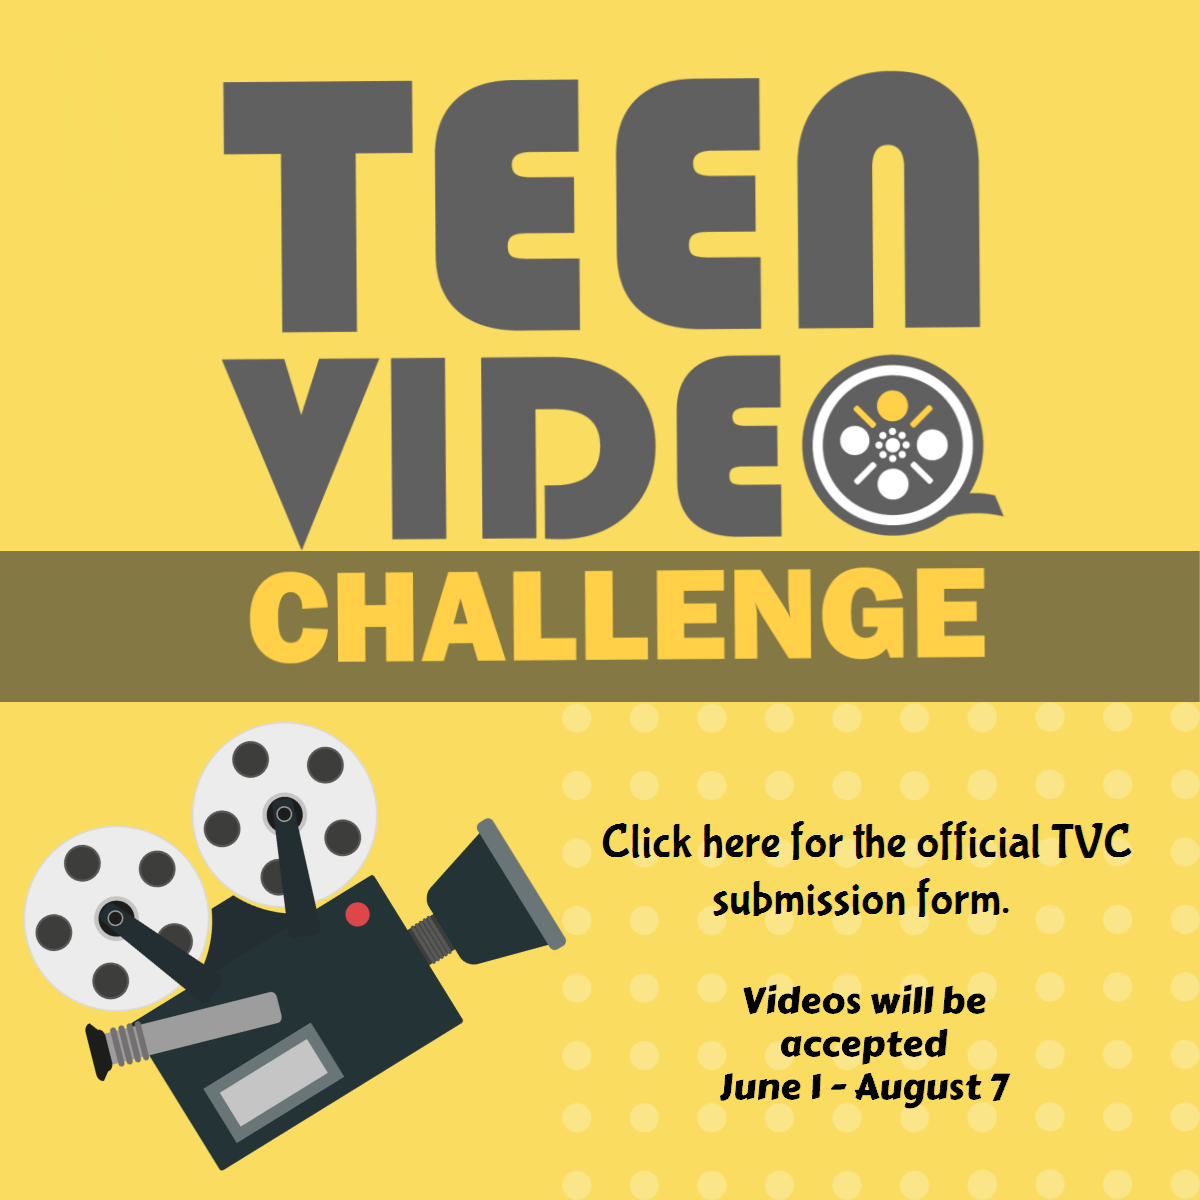 Teen Video Challenge:Clock here for the official TVC submission form Videos will be accepted June 1-August 7  Image of a movie camera